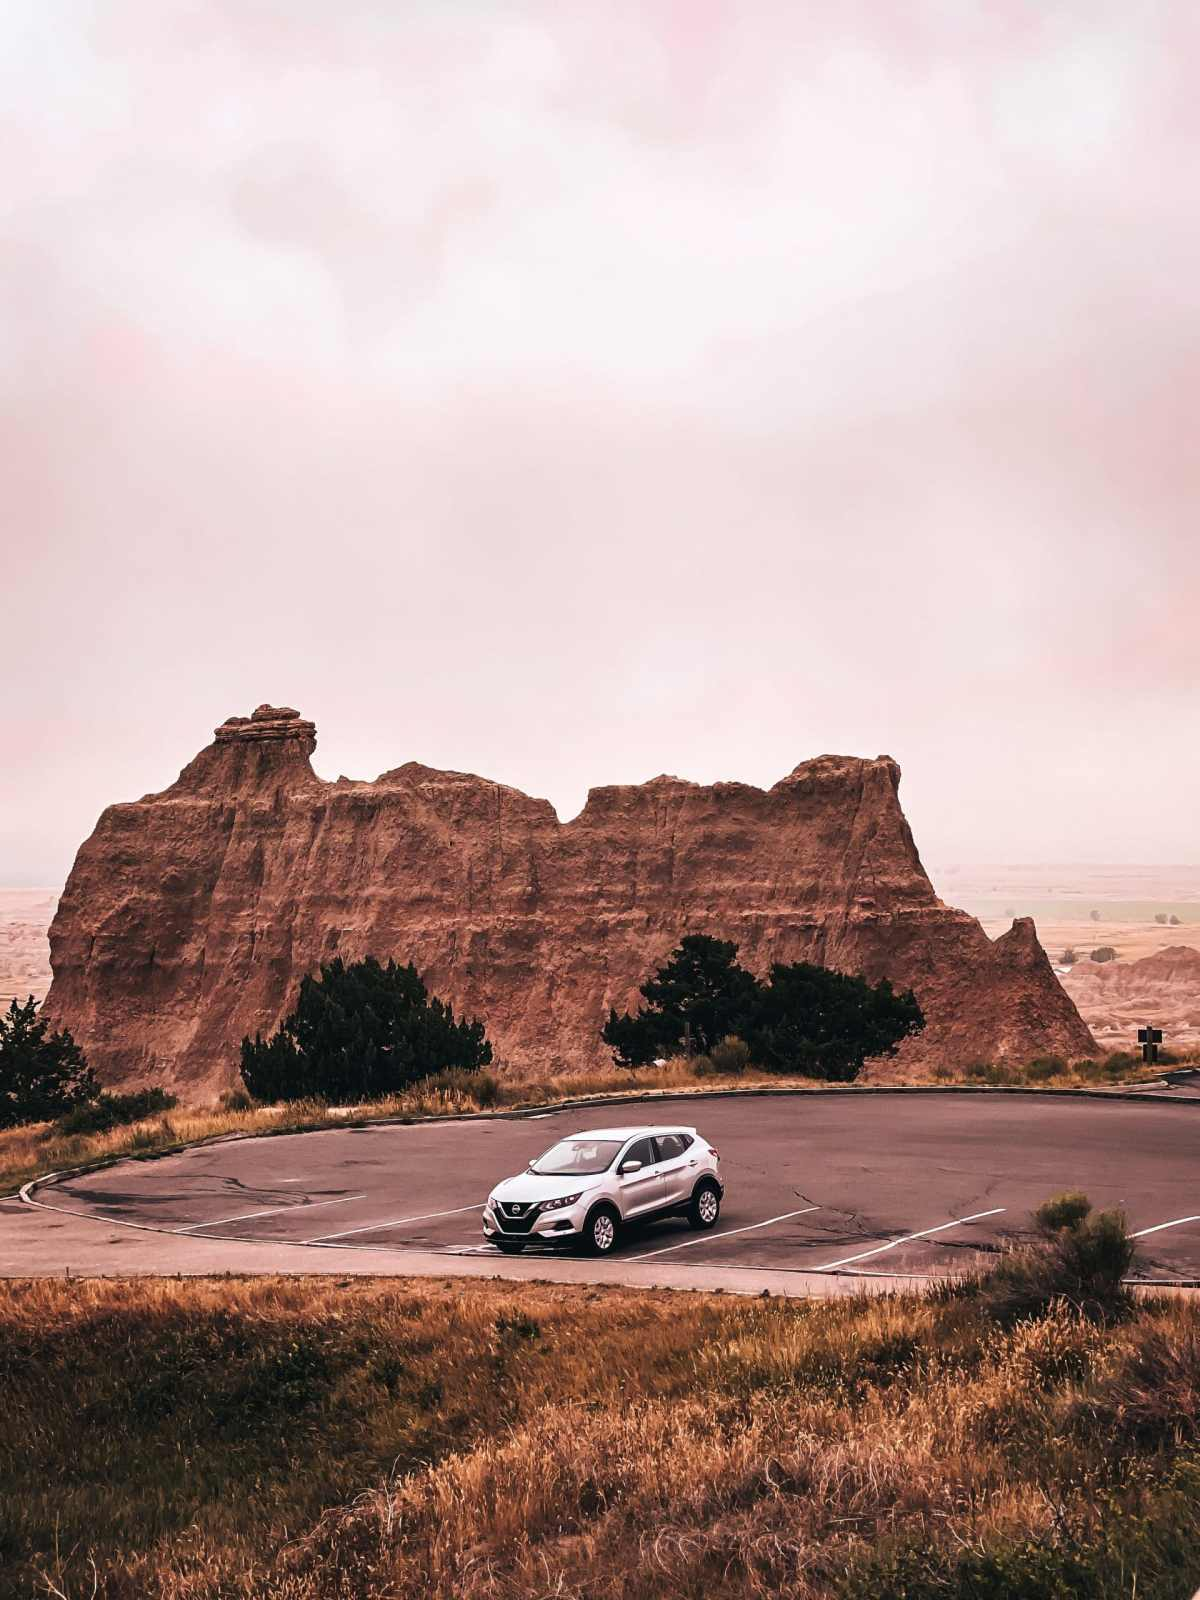 New Nissan Rogue sitting in parking lot in the Badlands National Park